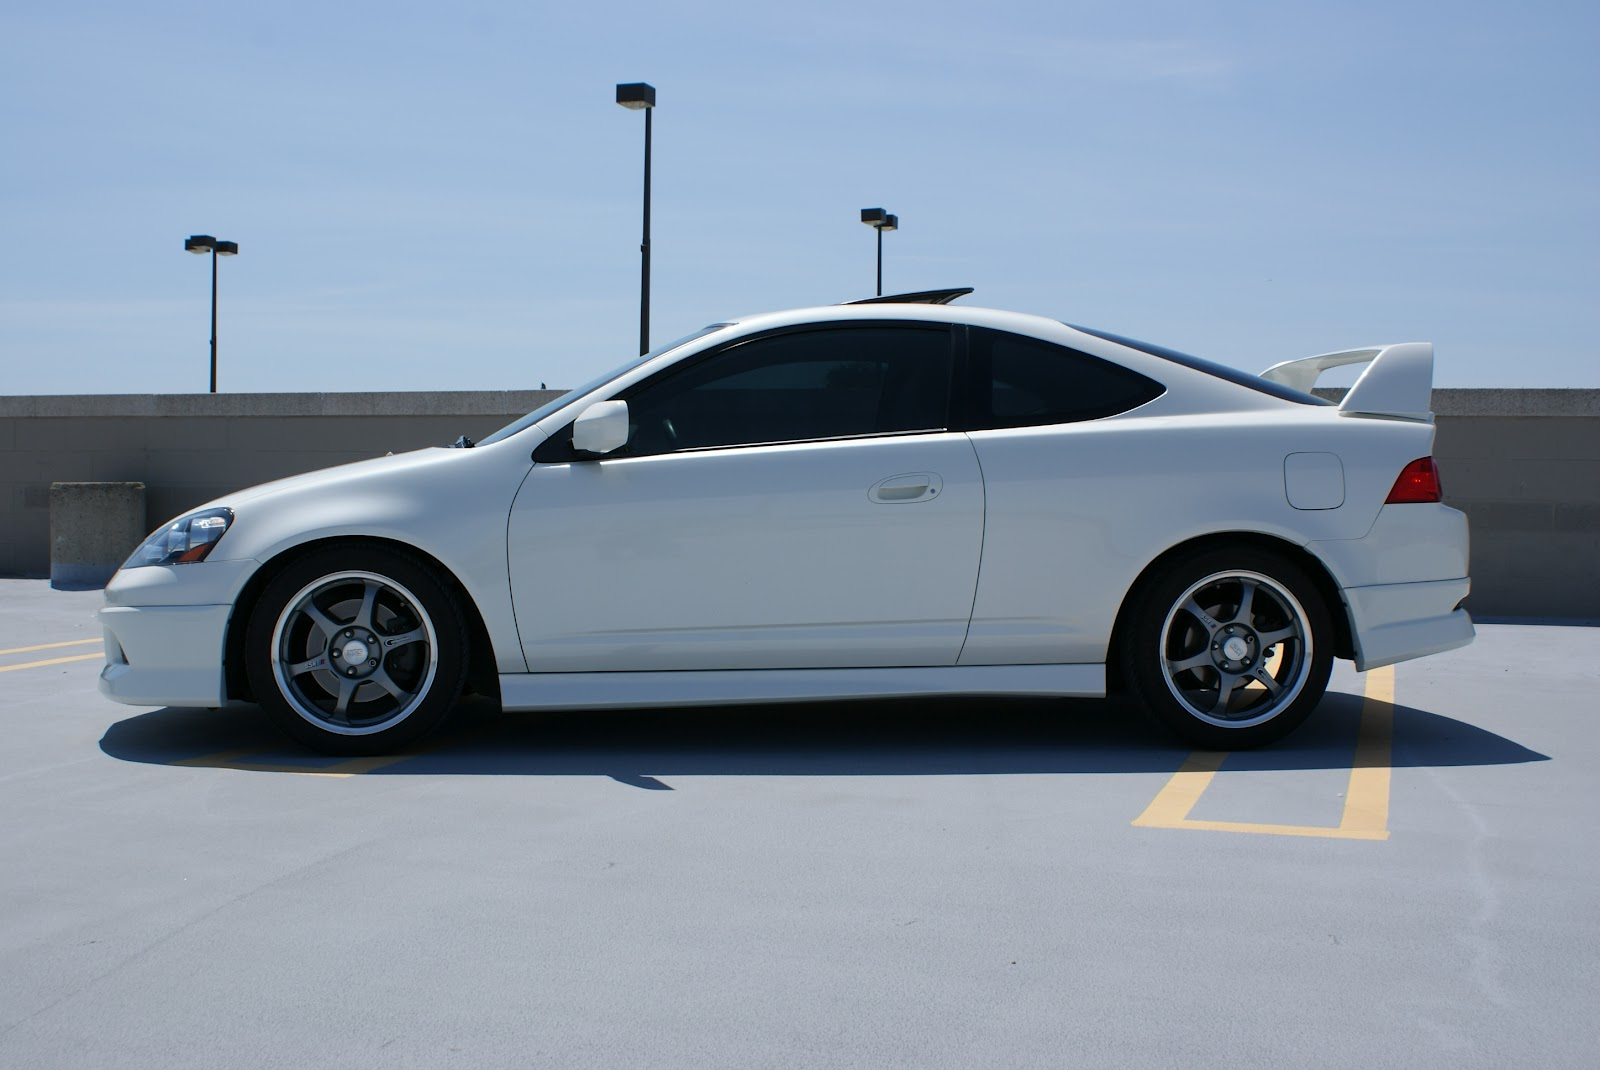 Acura integra side skirt girl perfect!